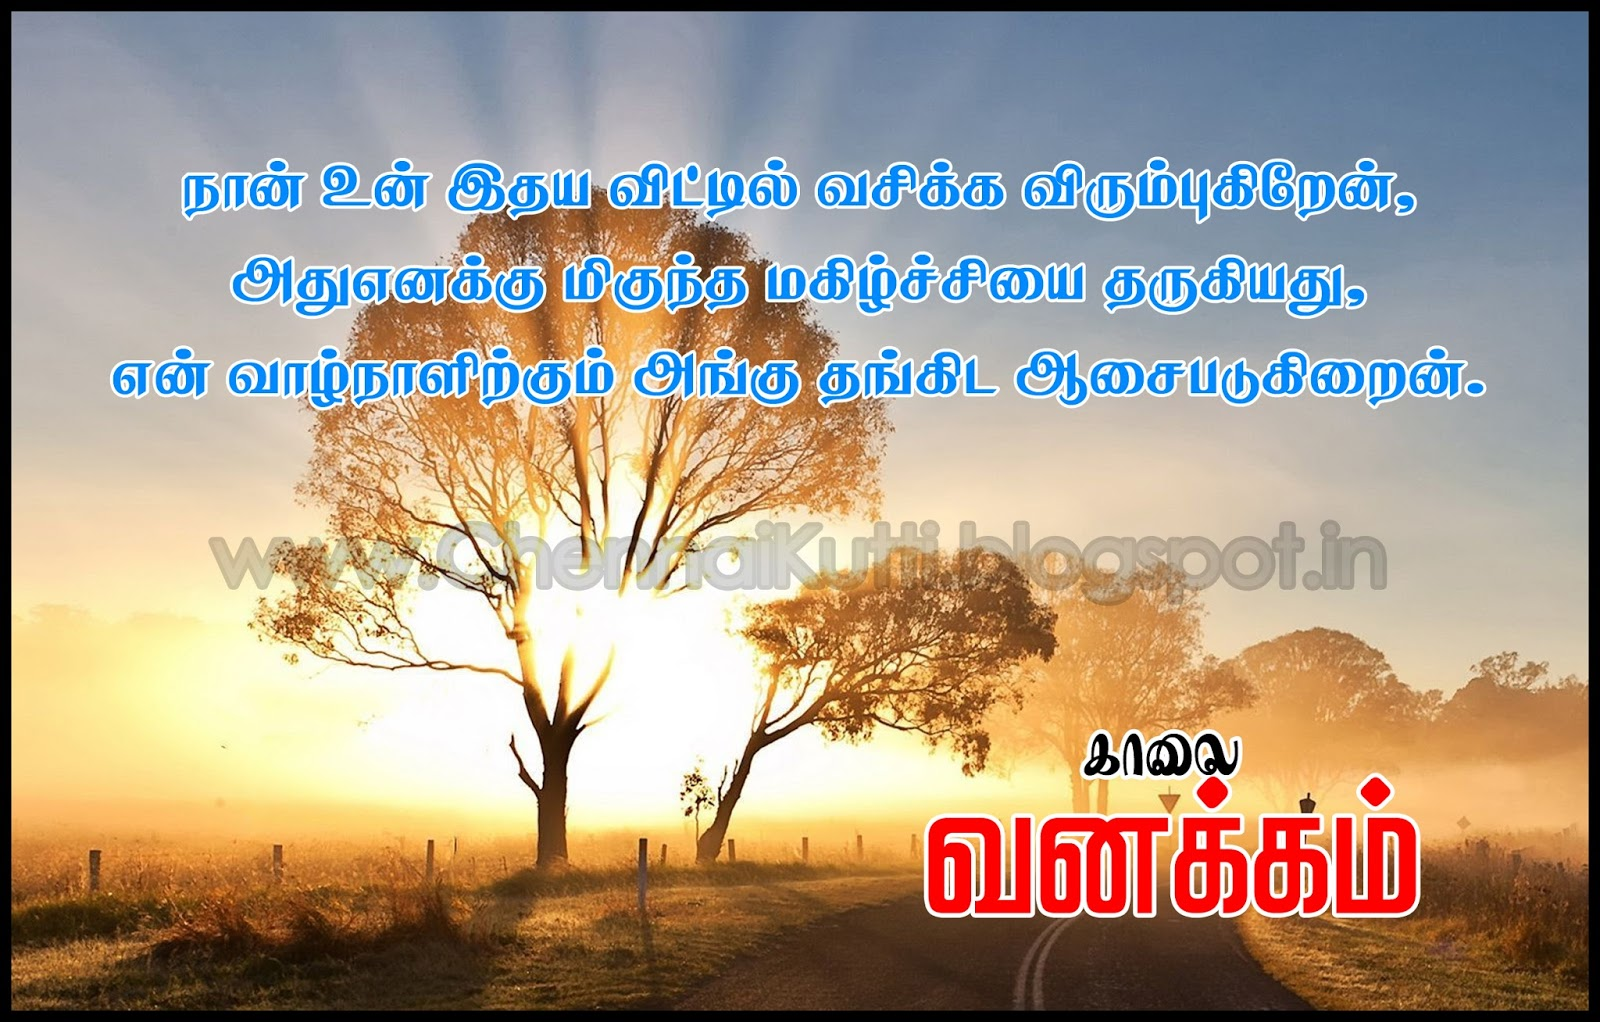 Tamil Quotes And Good Morning Wishes Images